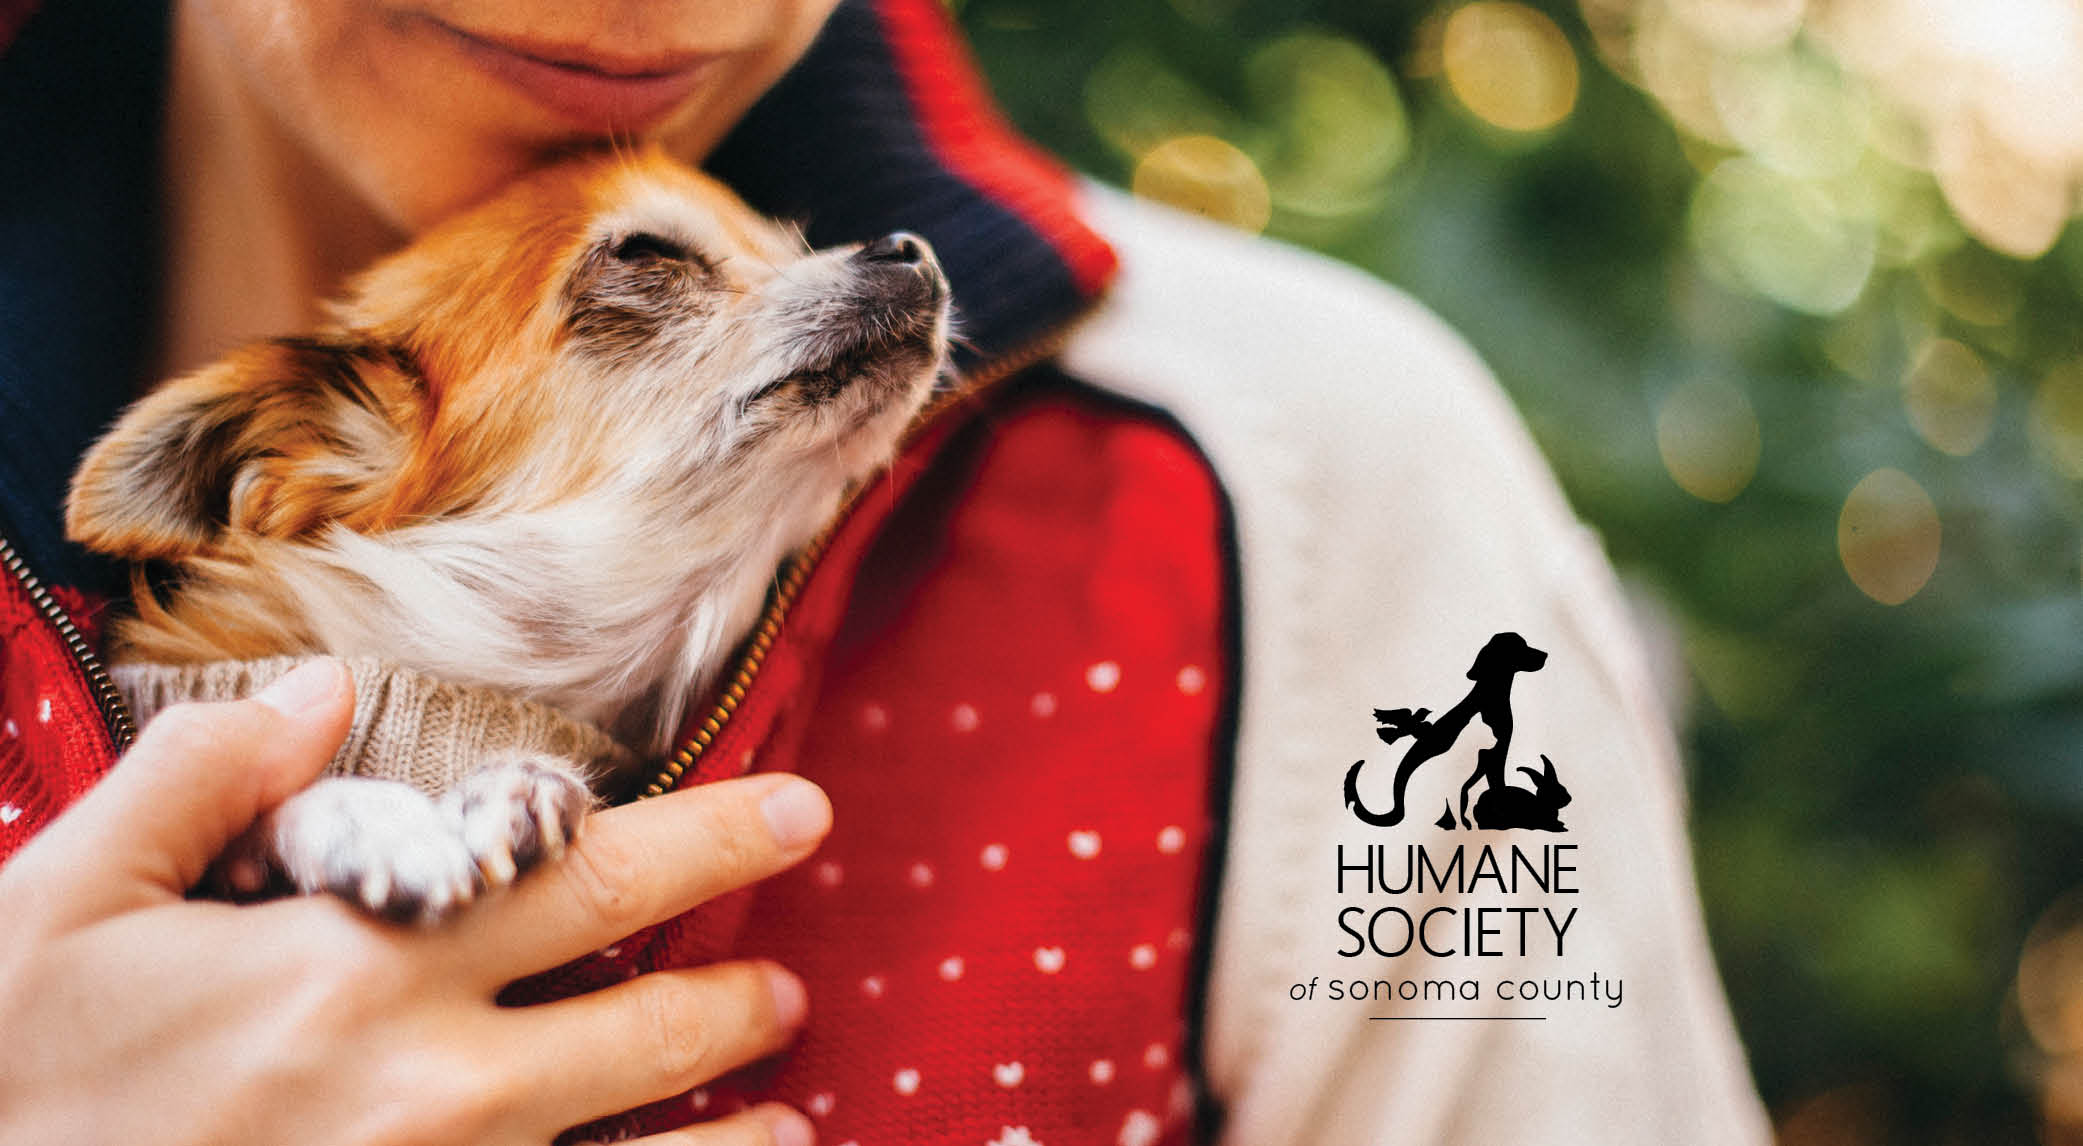 Humane Society of Sonoma County Secure Donation Page